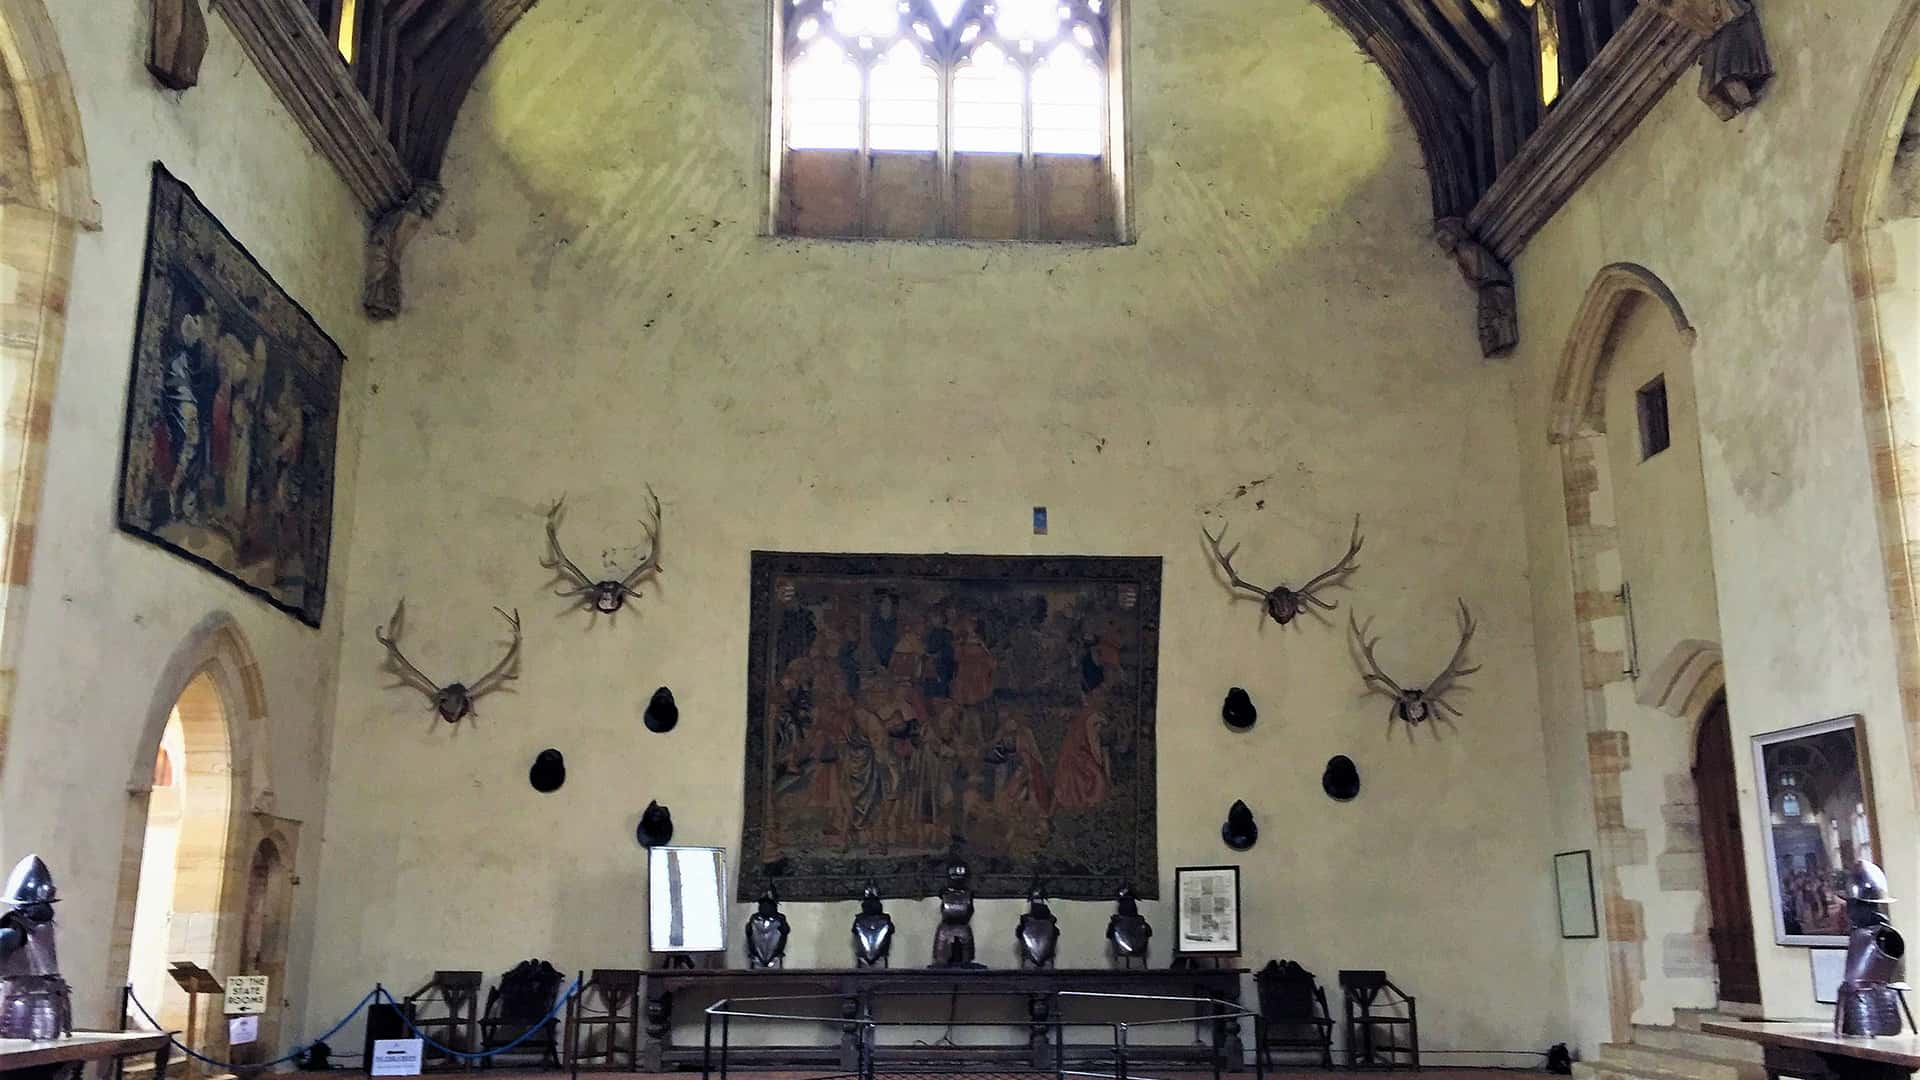 Stag Antlers and Tapestry in Penshurst Place